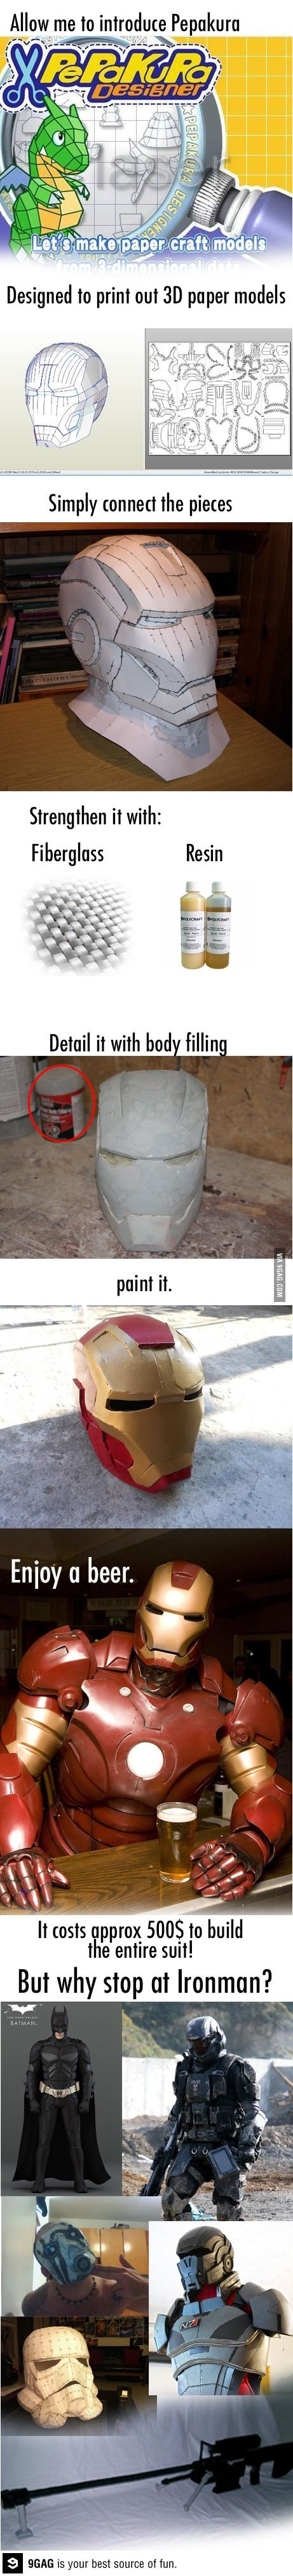 Pepakura - print out 3D paper models. Made Iron man mask.